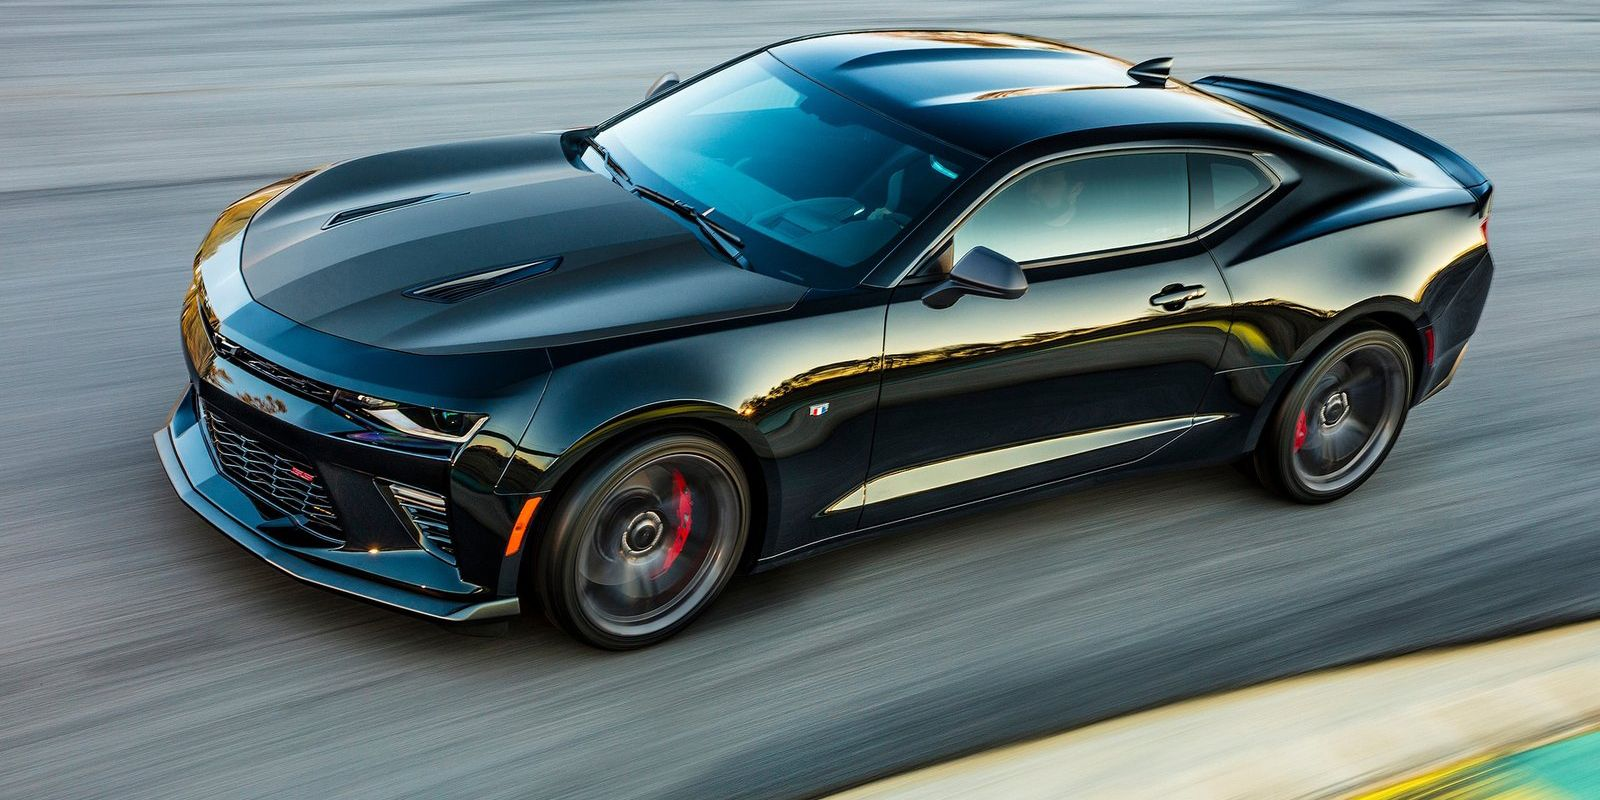 14 Best Performance Cars For Less Than $50,000   Fastest Cars Under $50K In  2017